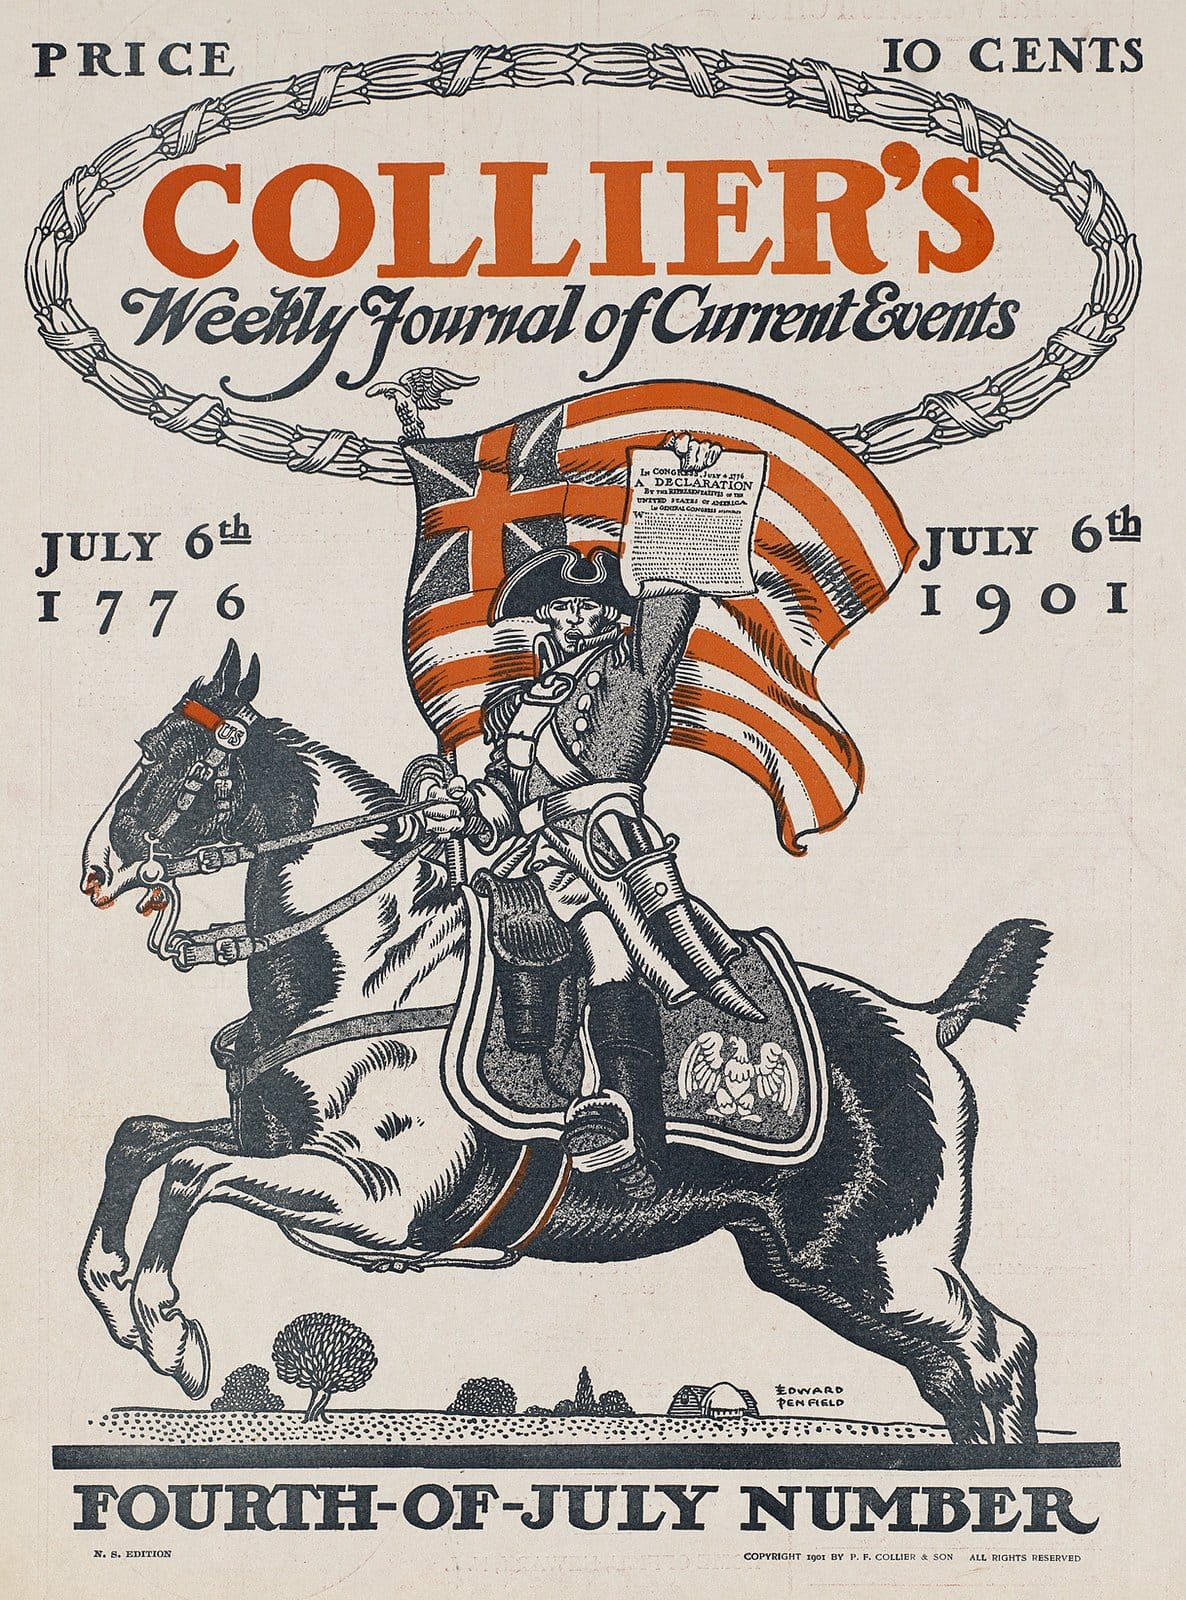 Collier's weekly journal of current events, Fourth-of-July number 1901